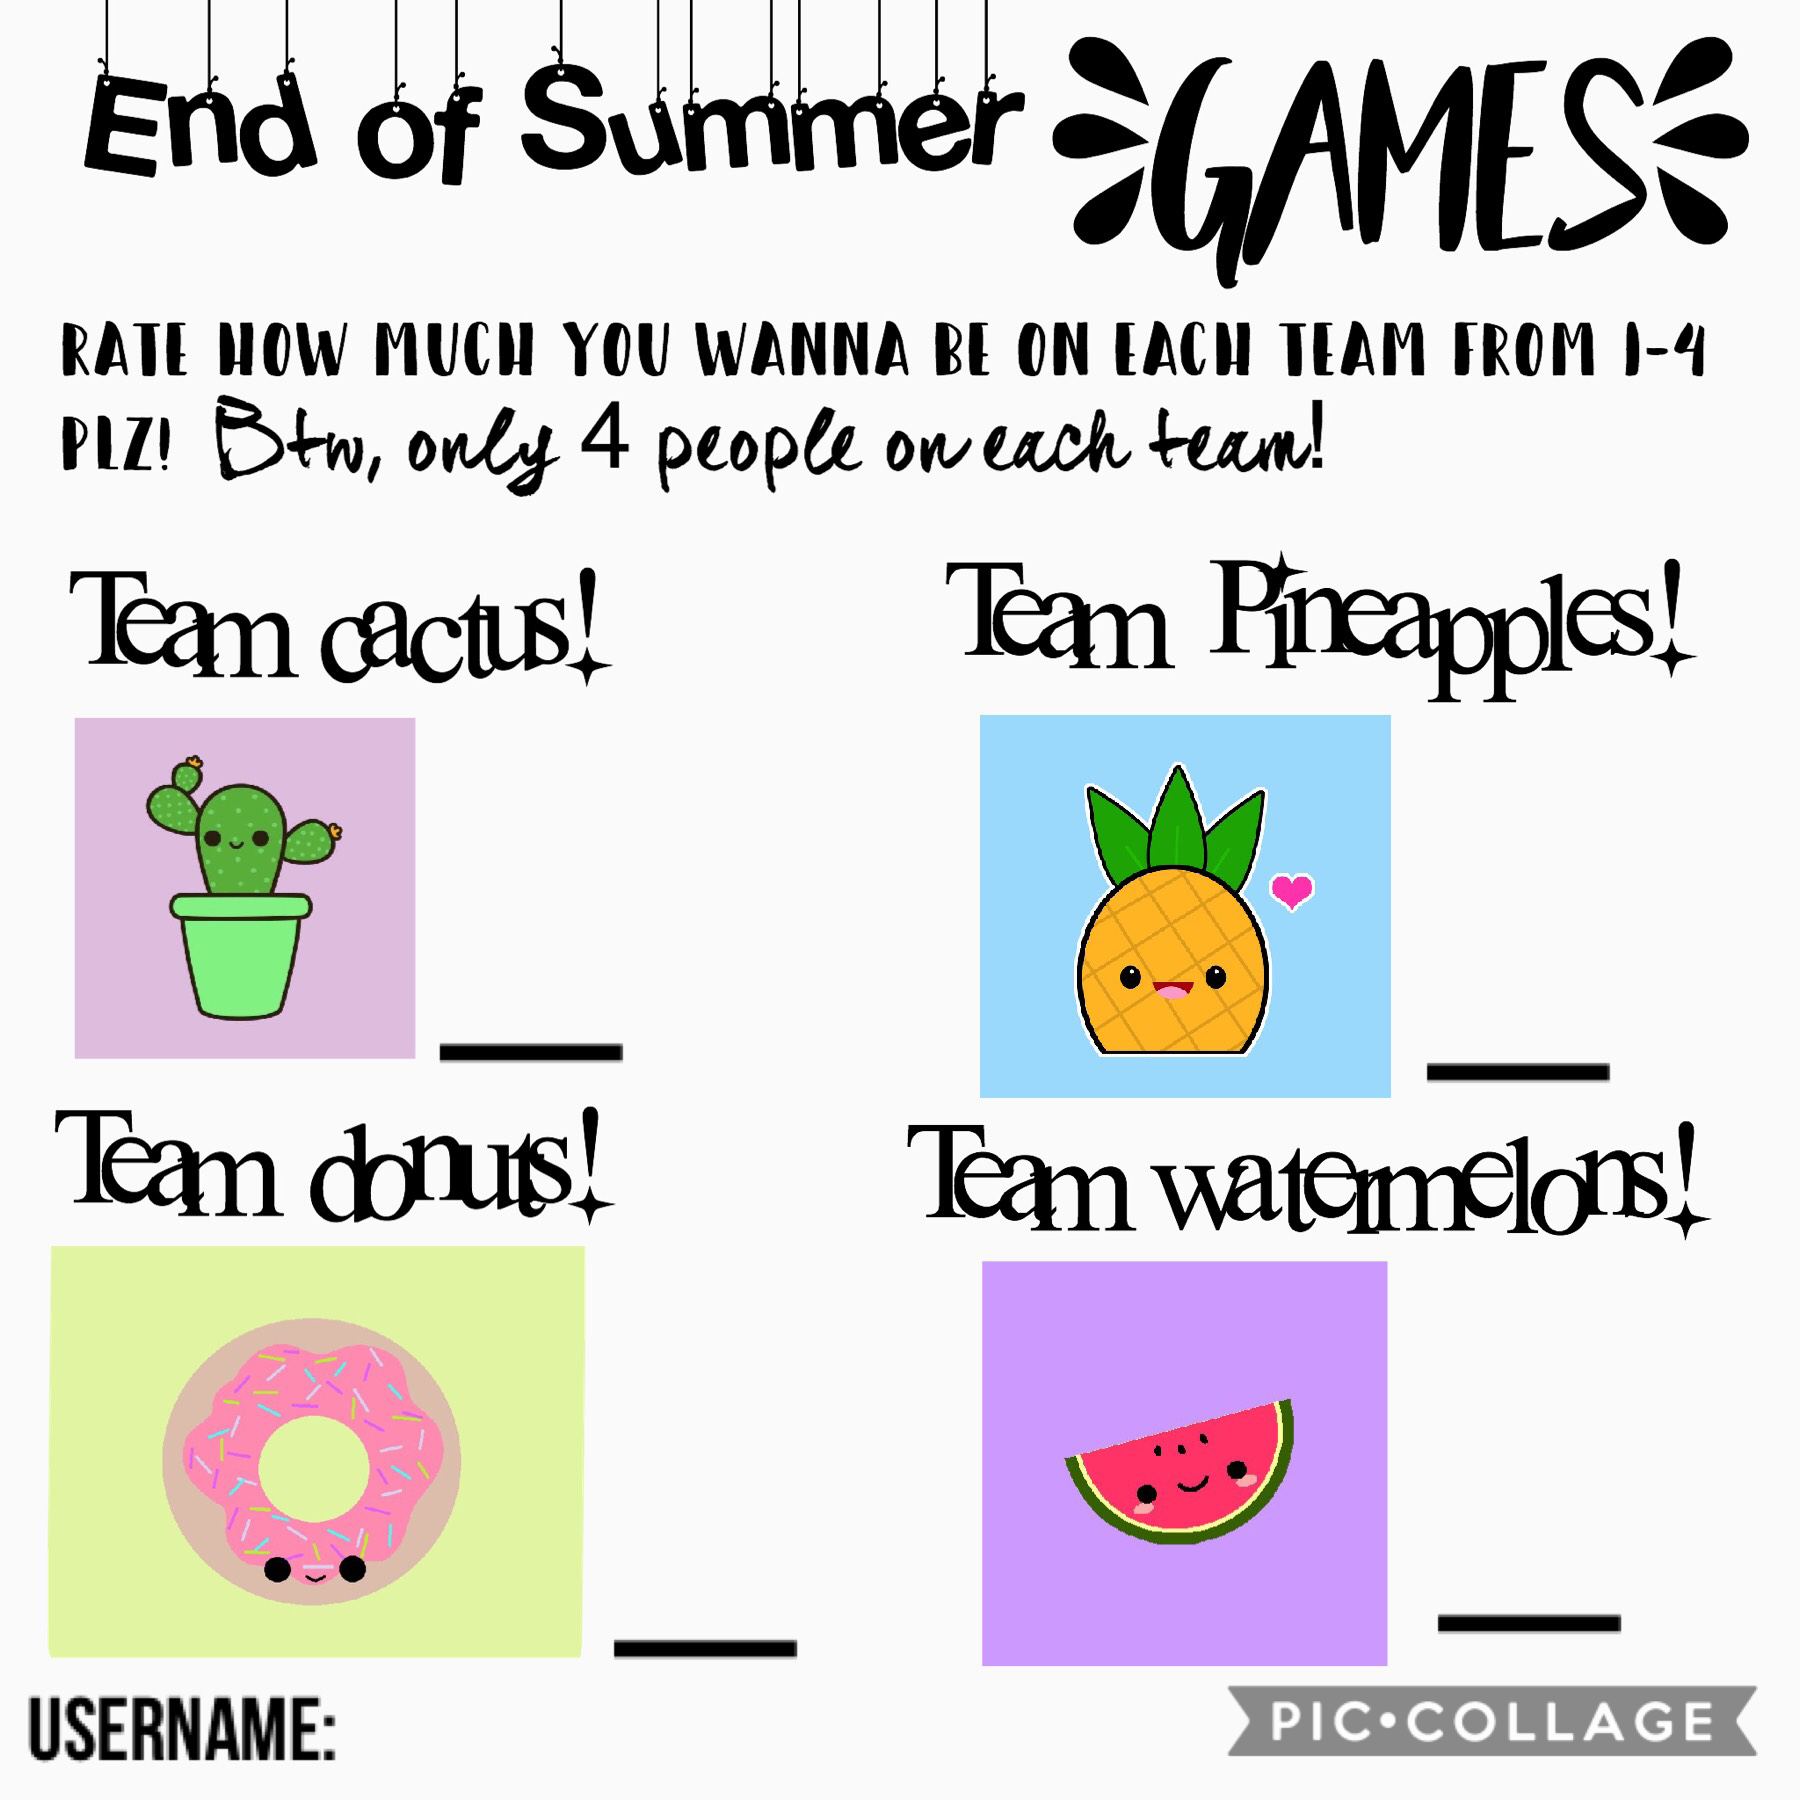 ⛅️Tap⛅️ End of Summer games! Enter quick before the chances are gone!